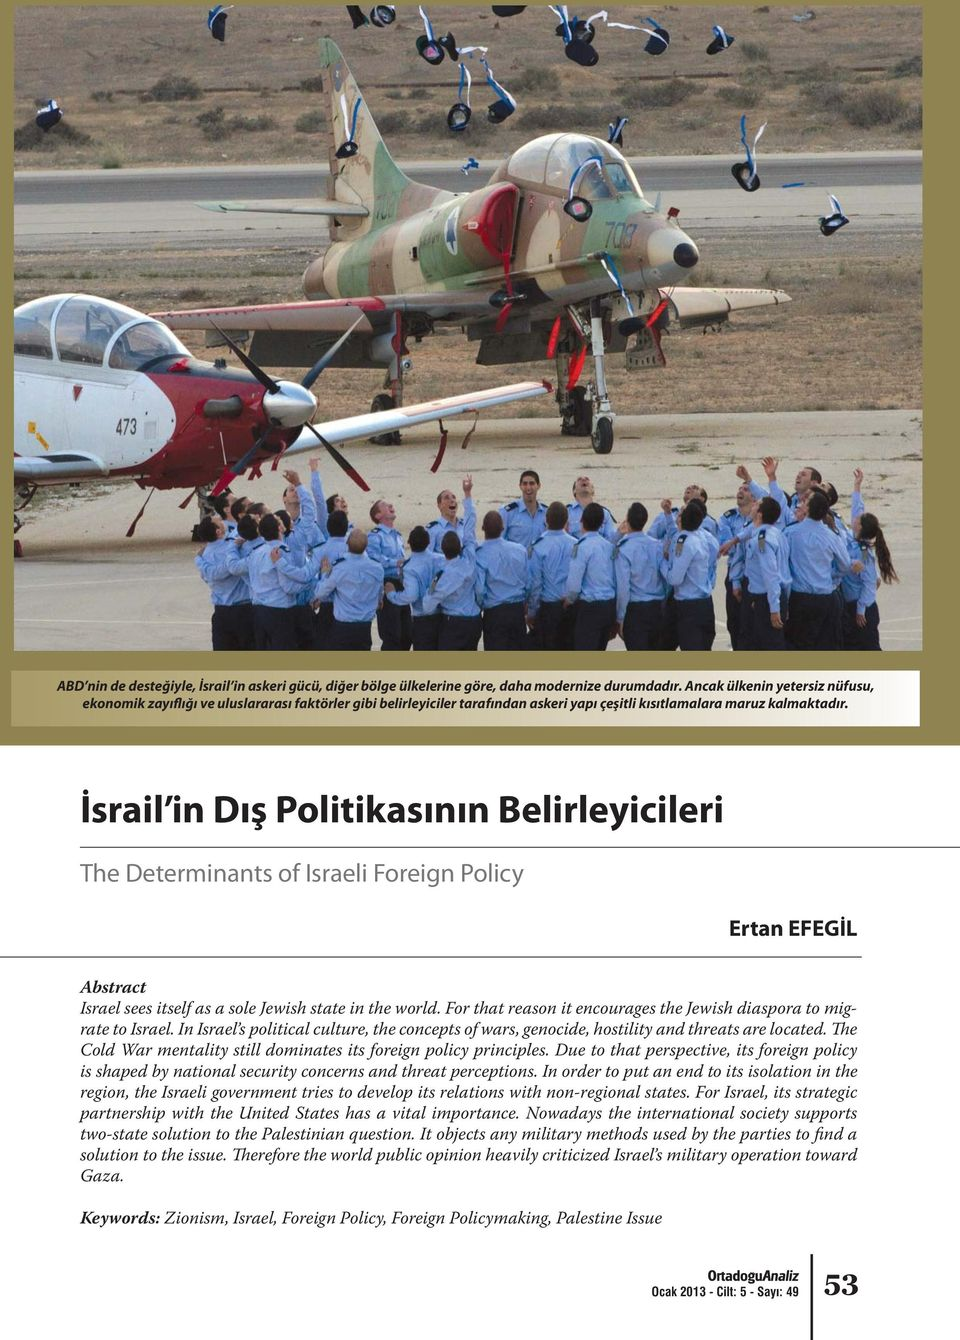 İsrail in Dış Politikasının Belirleyicileri The Determinants of Israeli Foreign Policy Ertan EFEGİL Abstract Israel sees itself as a sole Jewish state in the world.